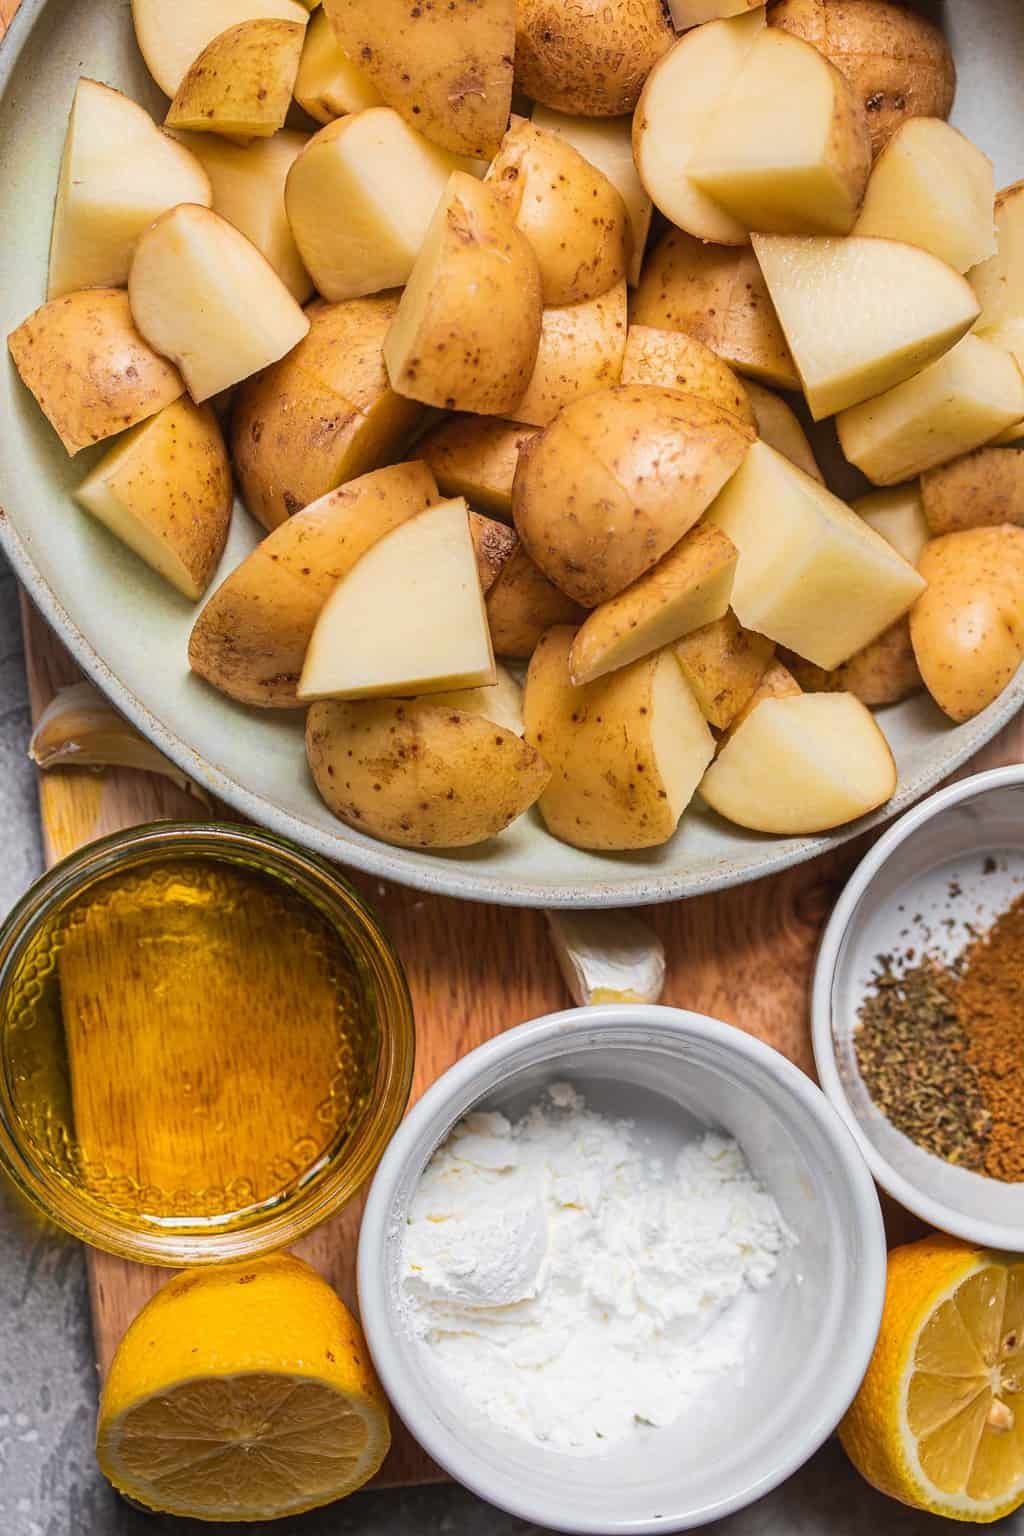 Ingredients for the best roasted potatoes